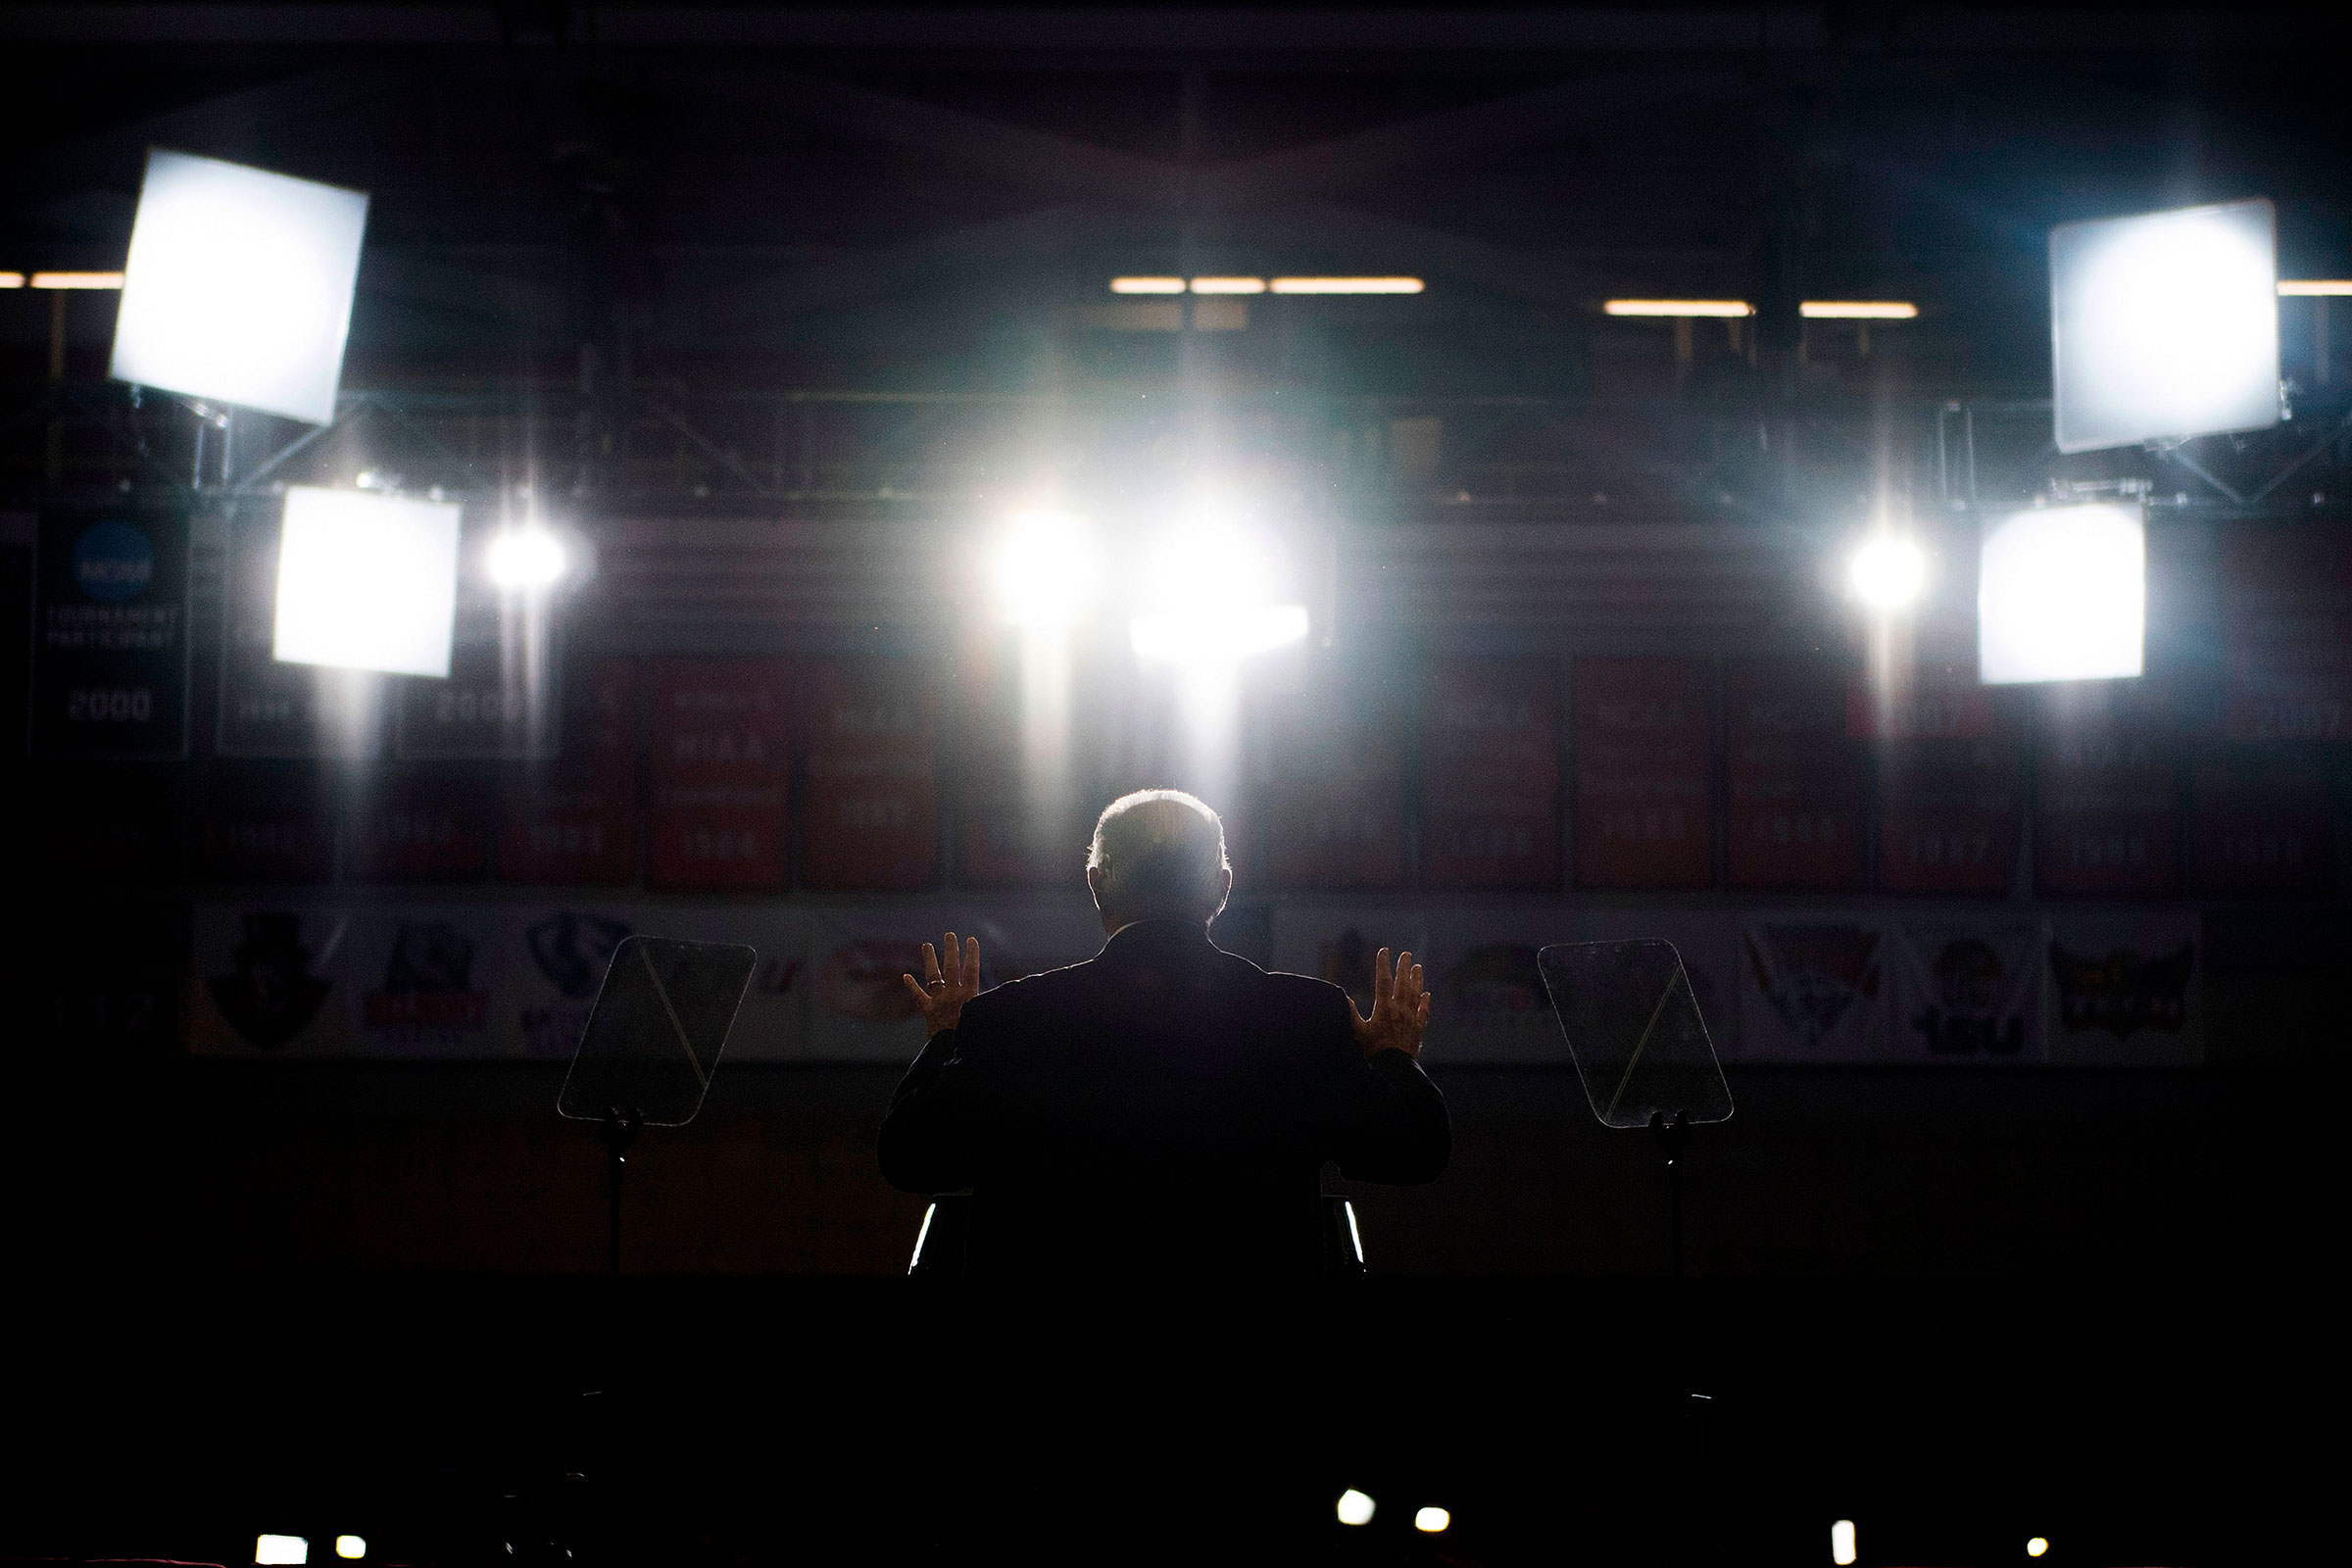 Limbaugh speaks at a Make America Great Again rally in Cape Girardeau, Mo. on Nov. 5, 2018.